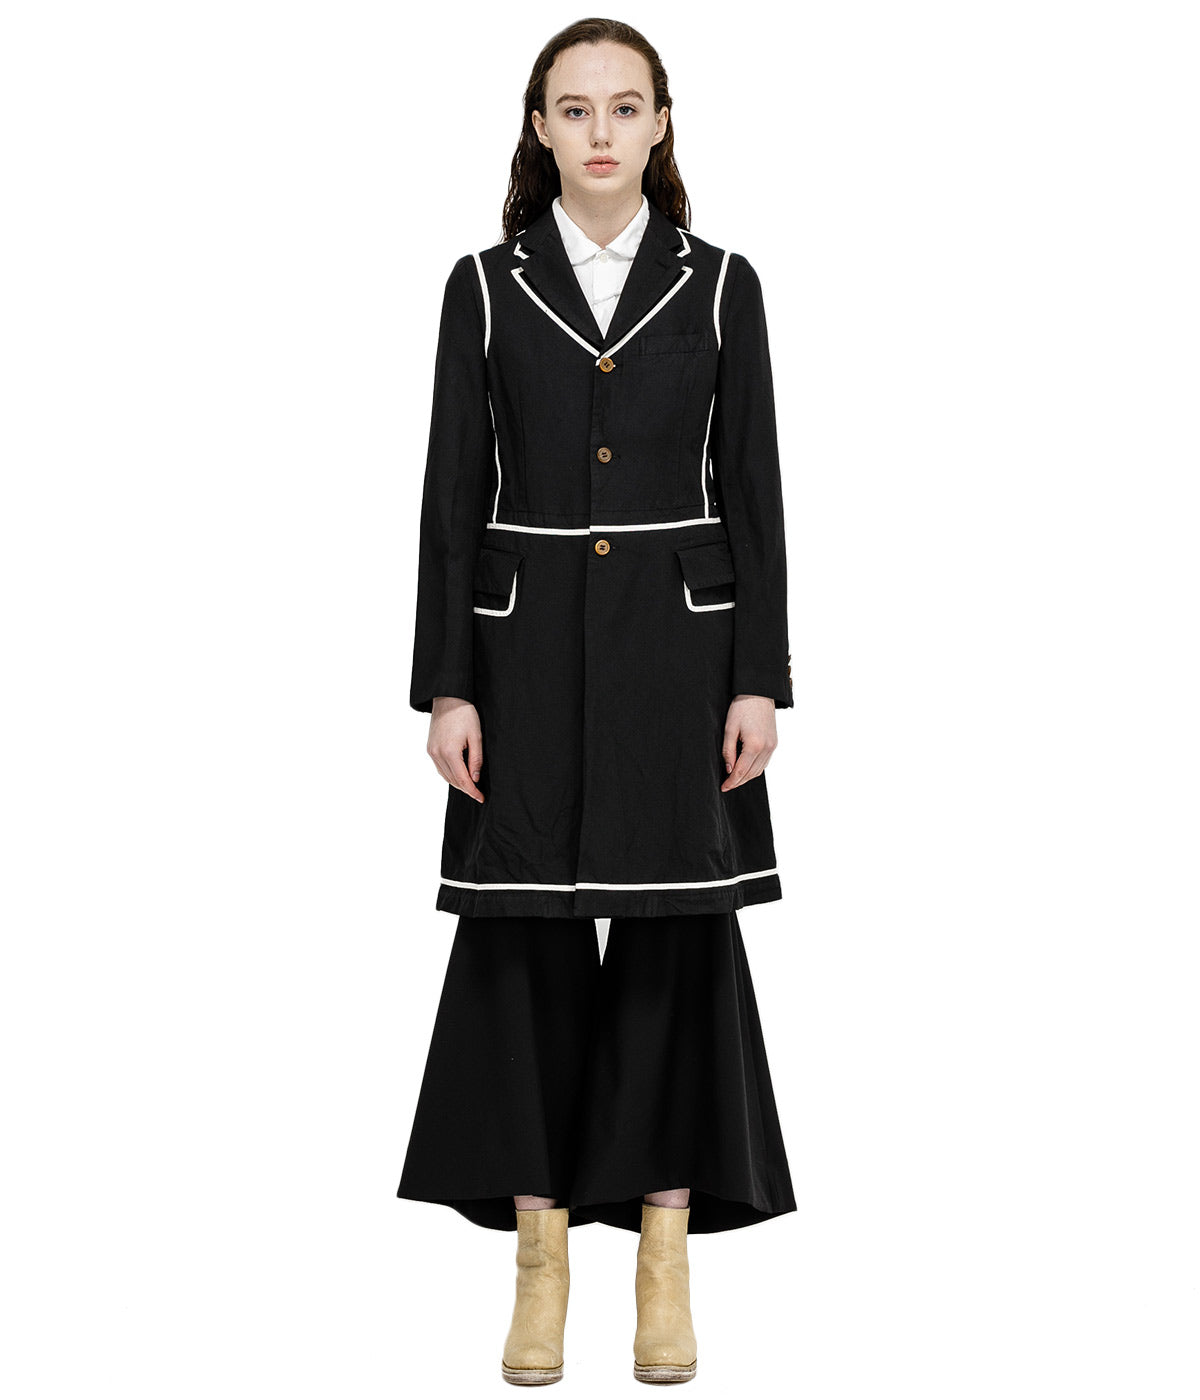 Black Taped Knee High Coat